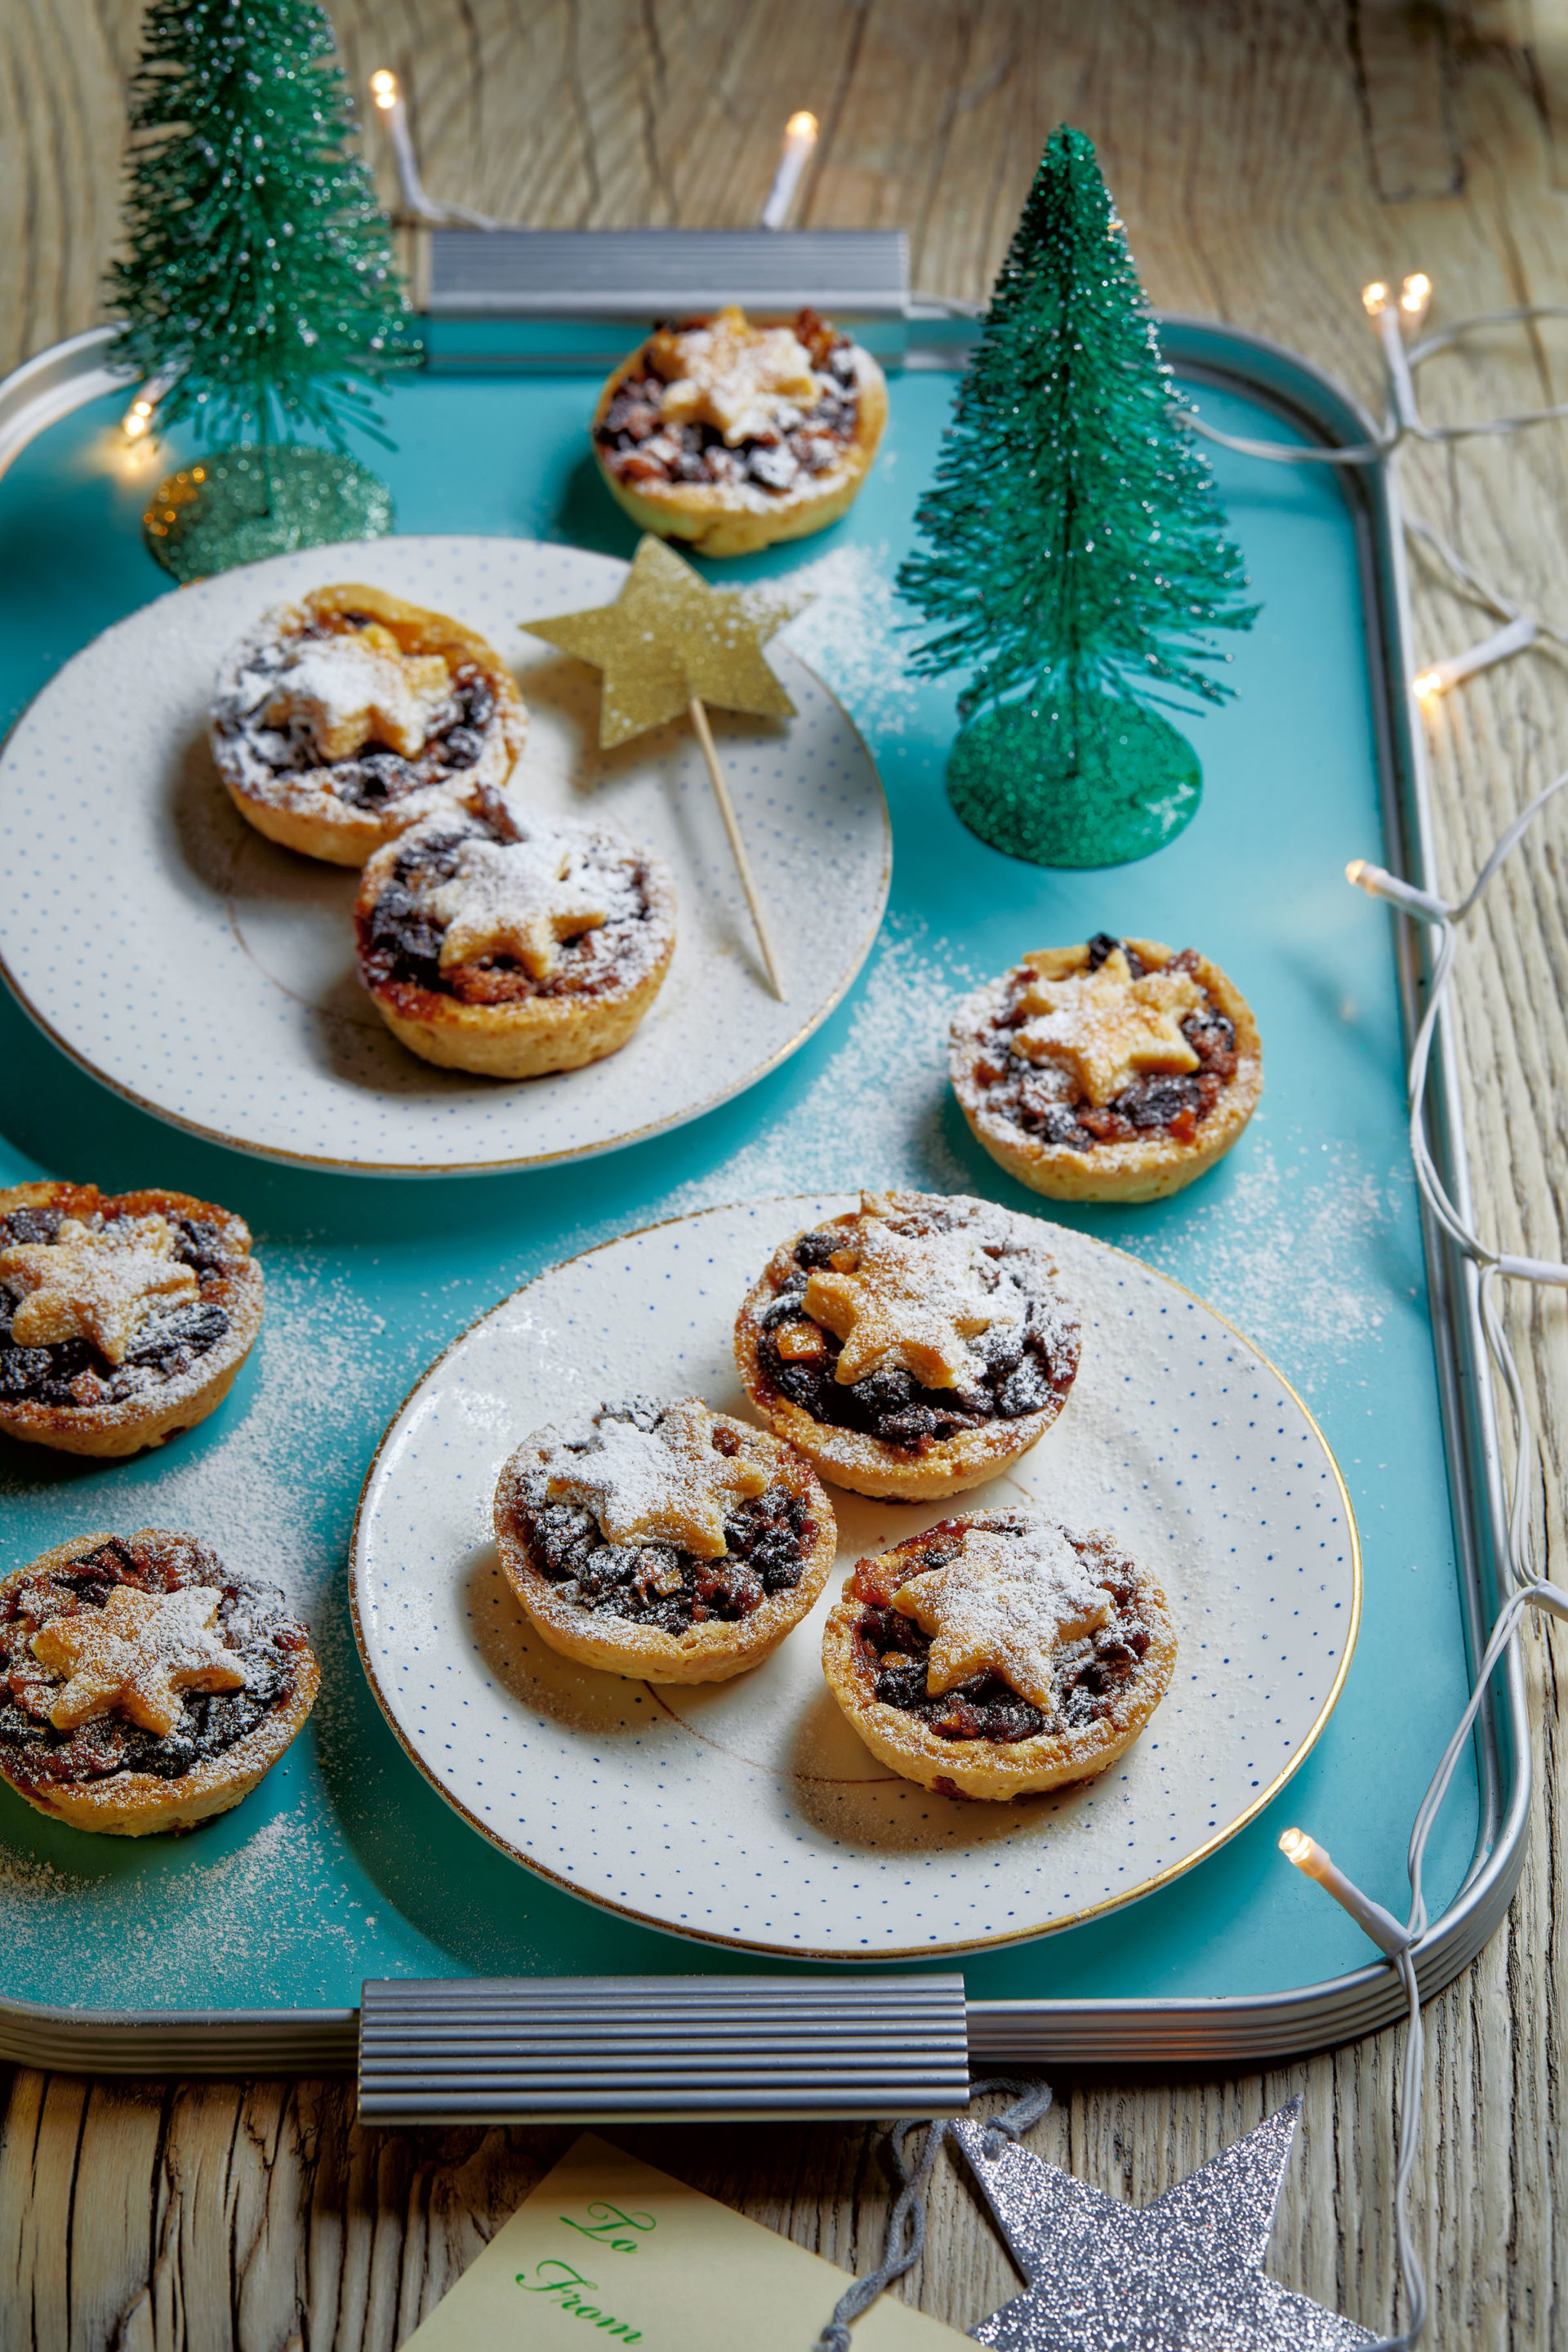 Fearne Cotton's Mince Pies